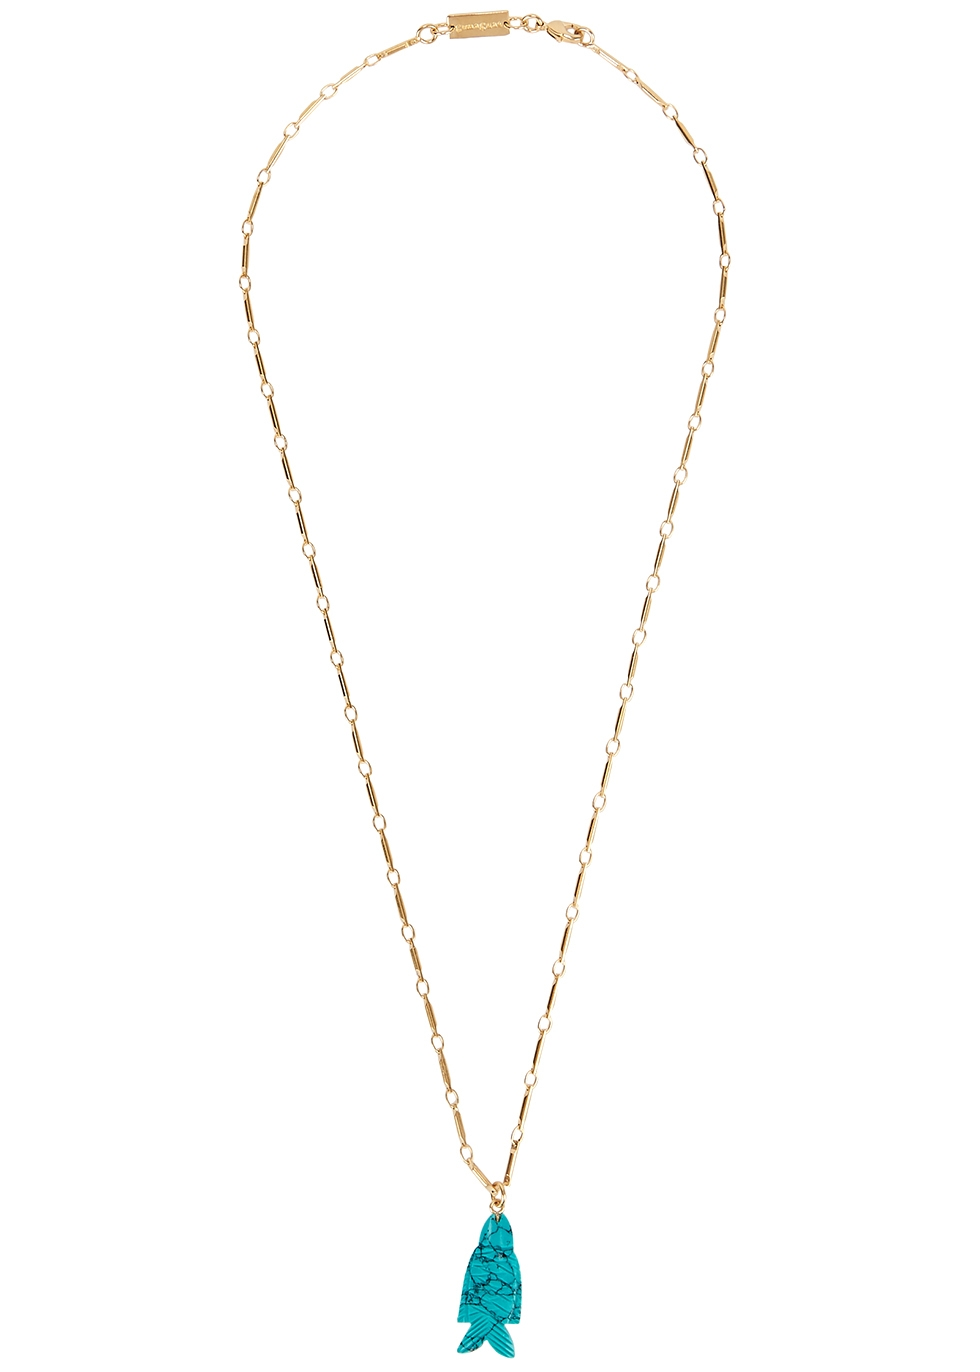 Fish gold-plated necklace